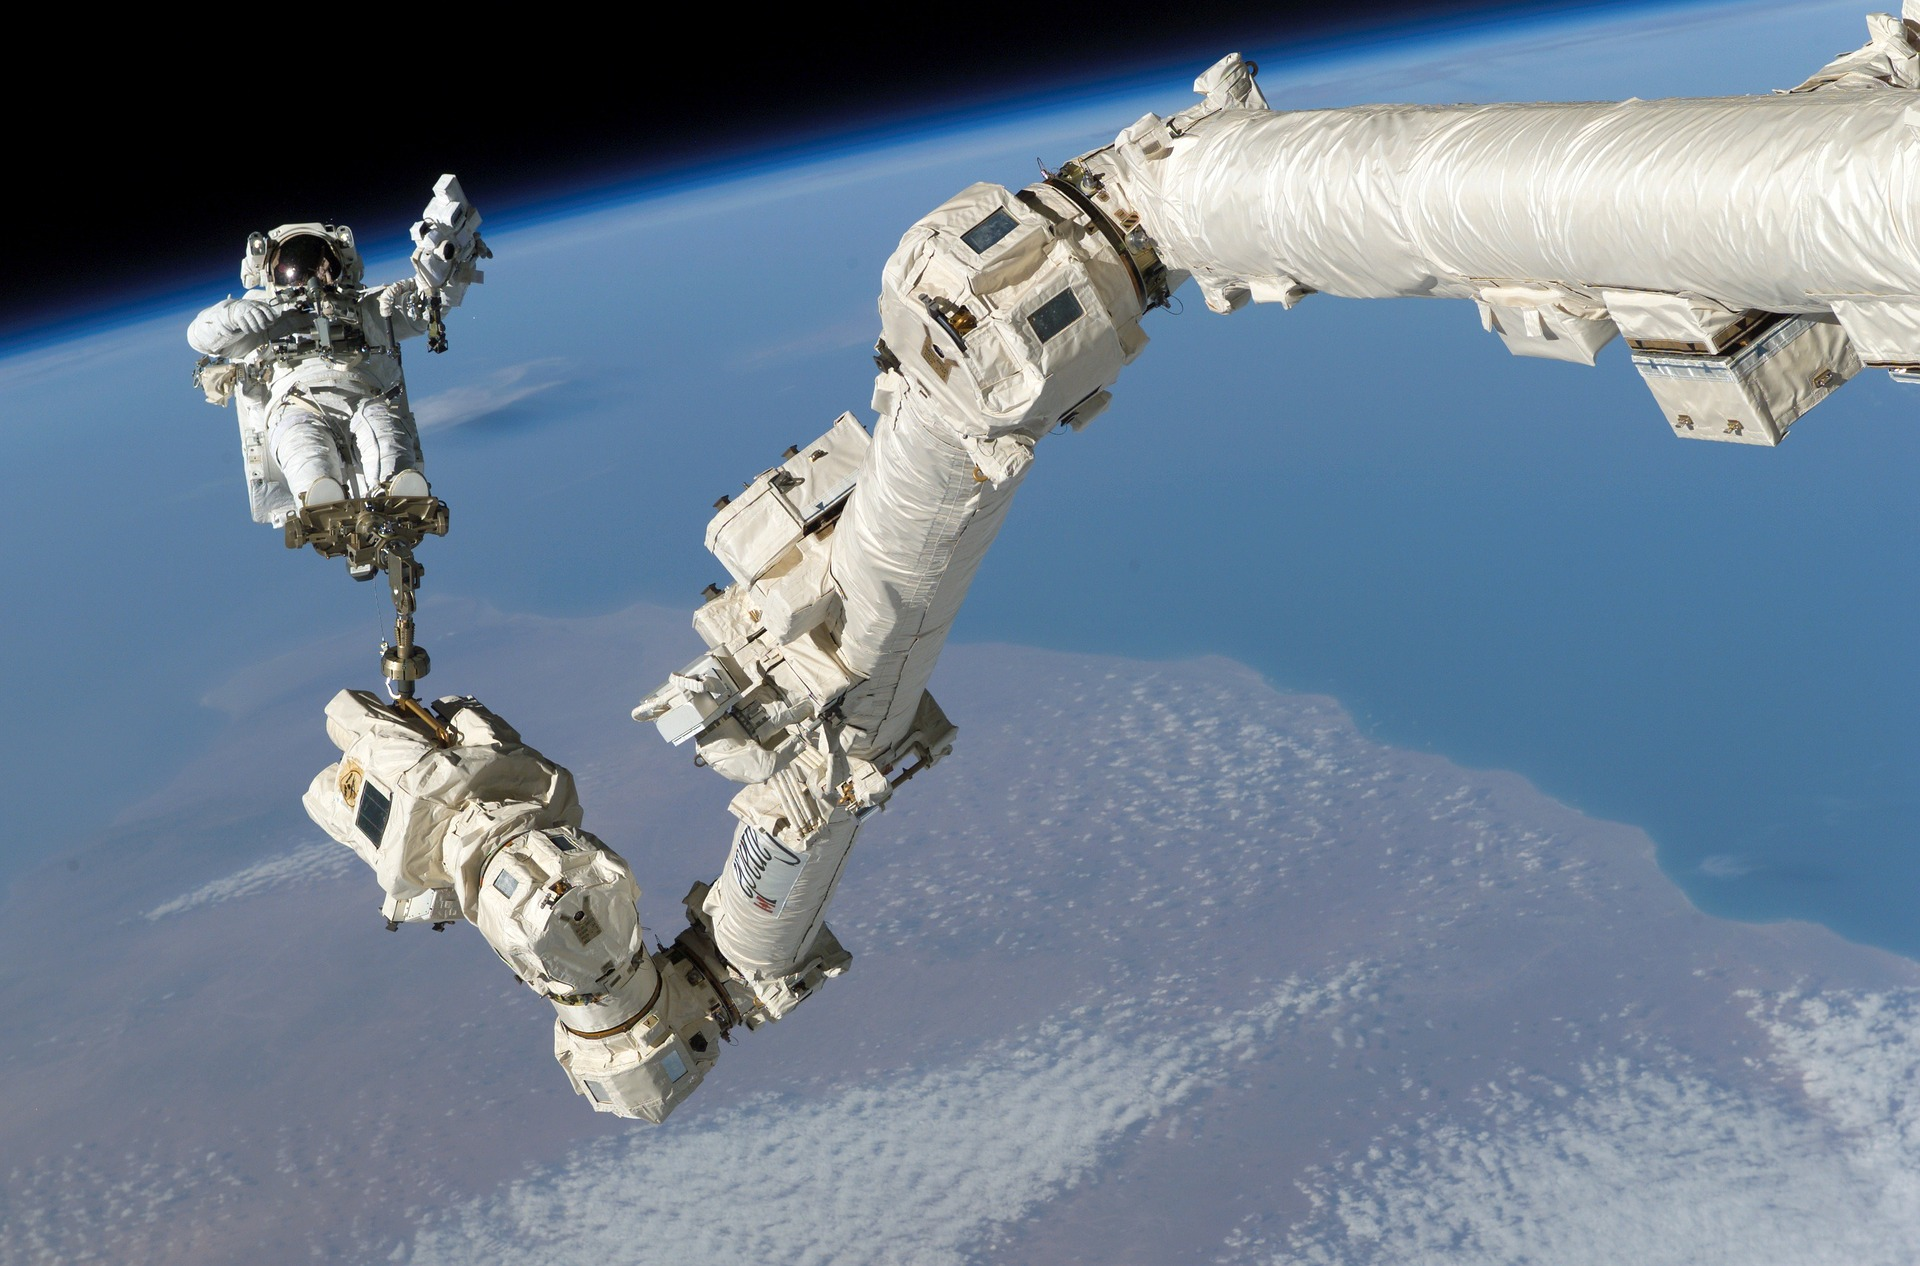 A New Innovative Invention That Will Help Astronauts Jump In Zero Gravity To Maintain Their Bone Density In Space